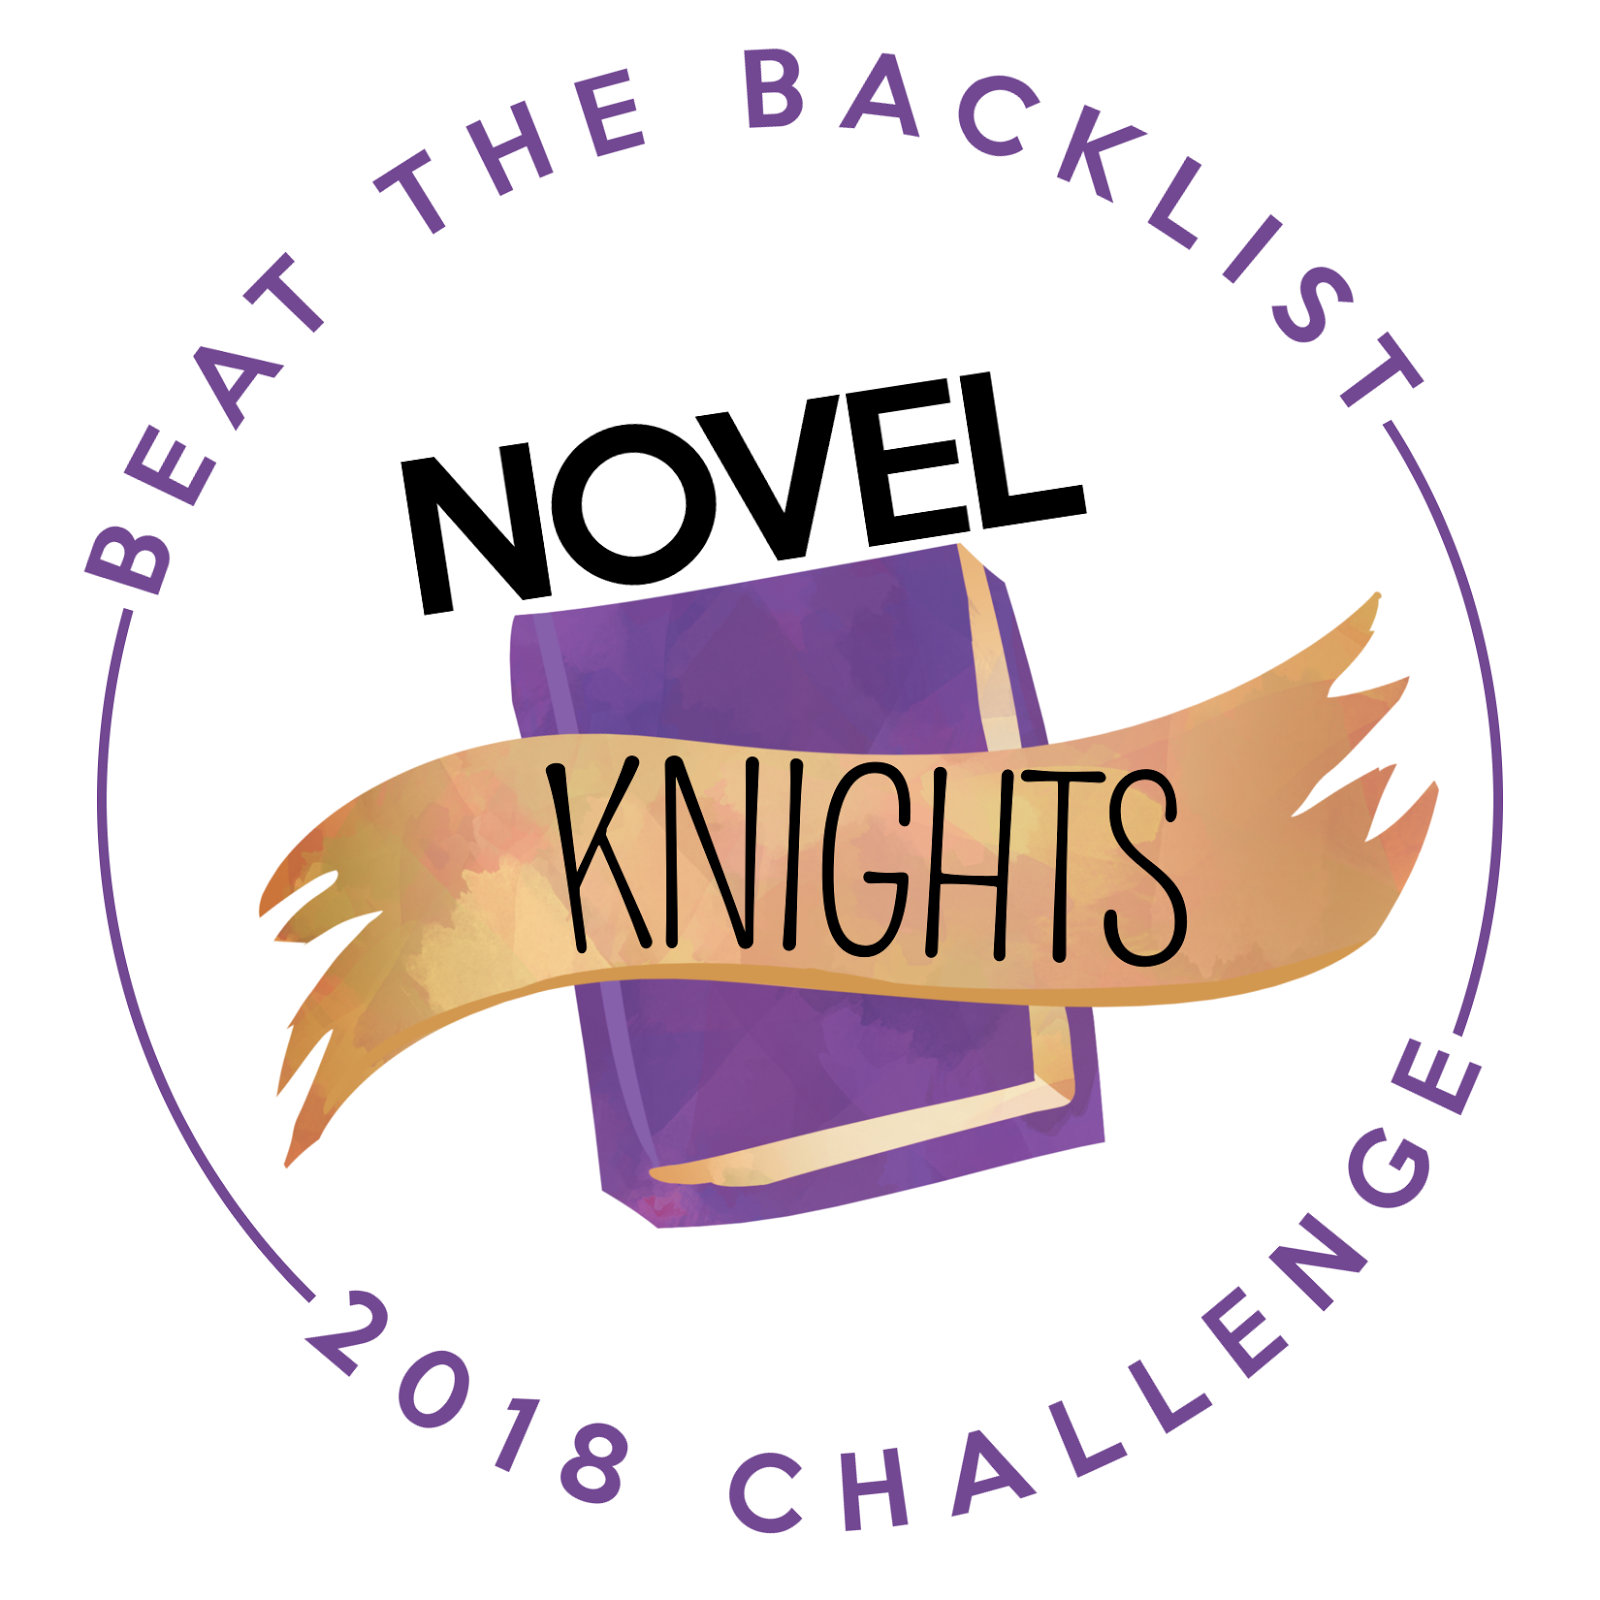 2018 Beat The Backlist Team